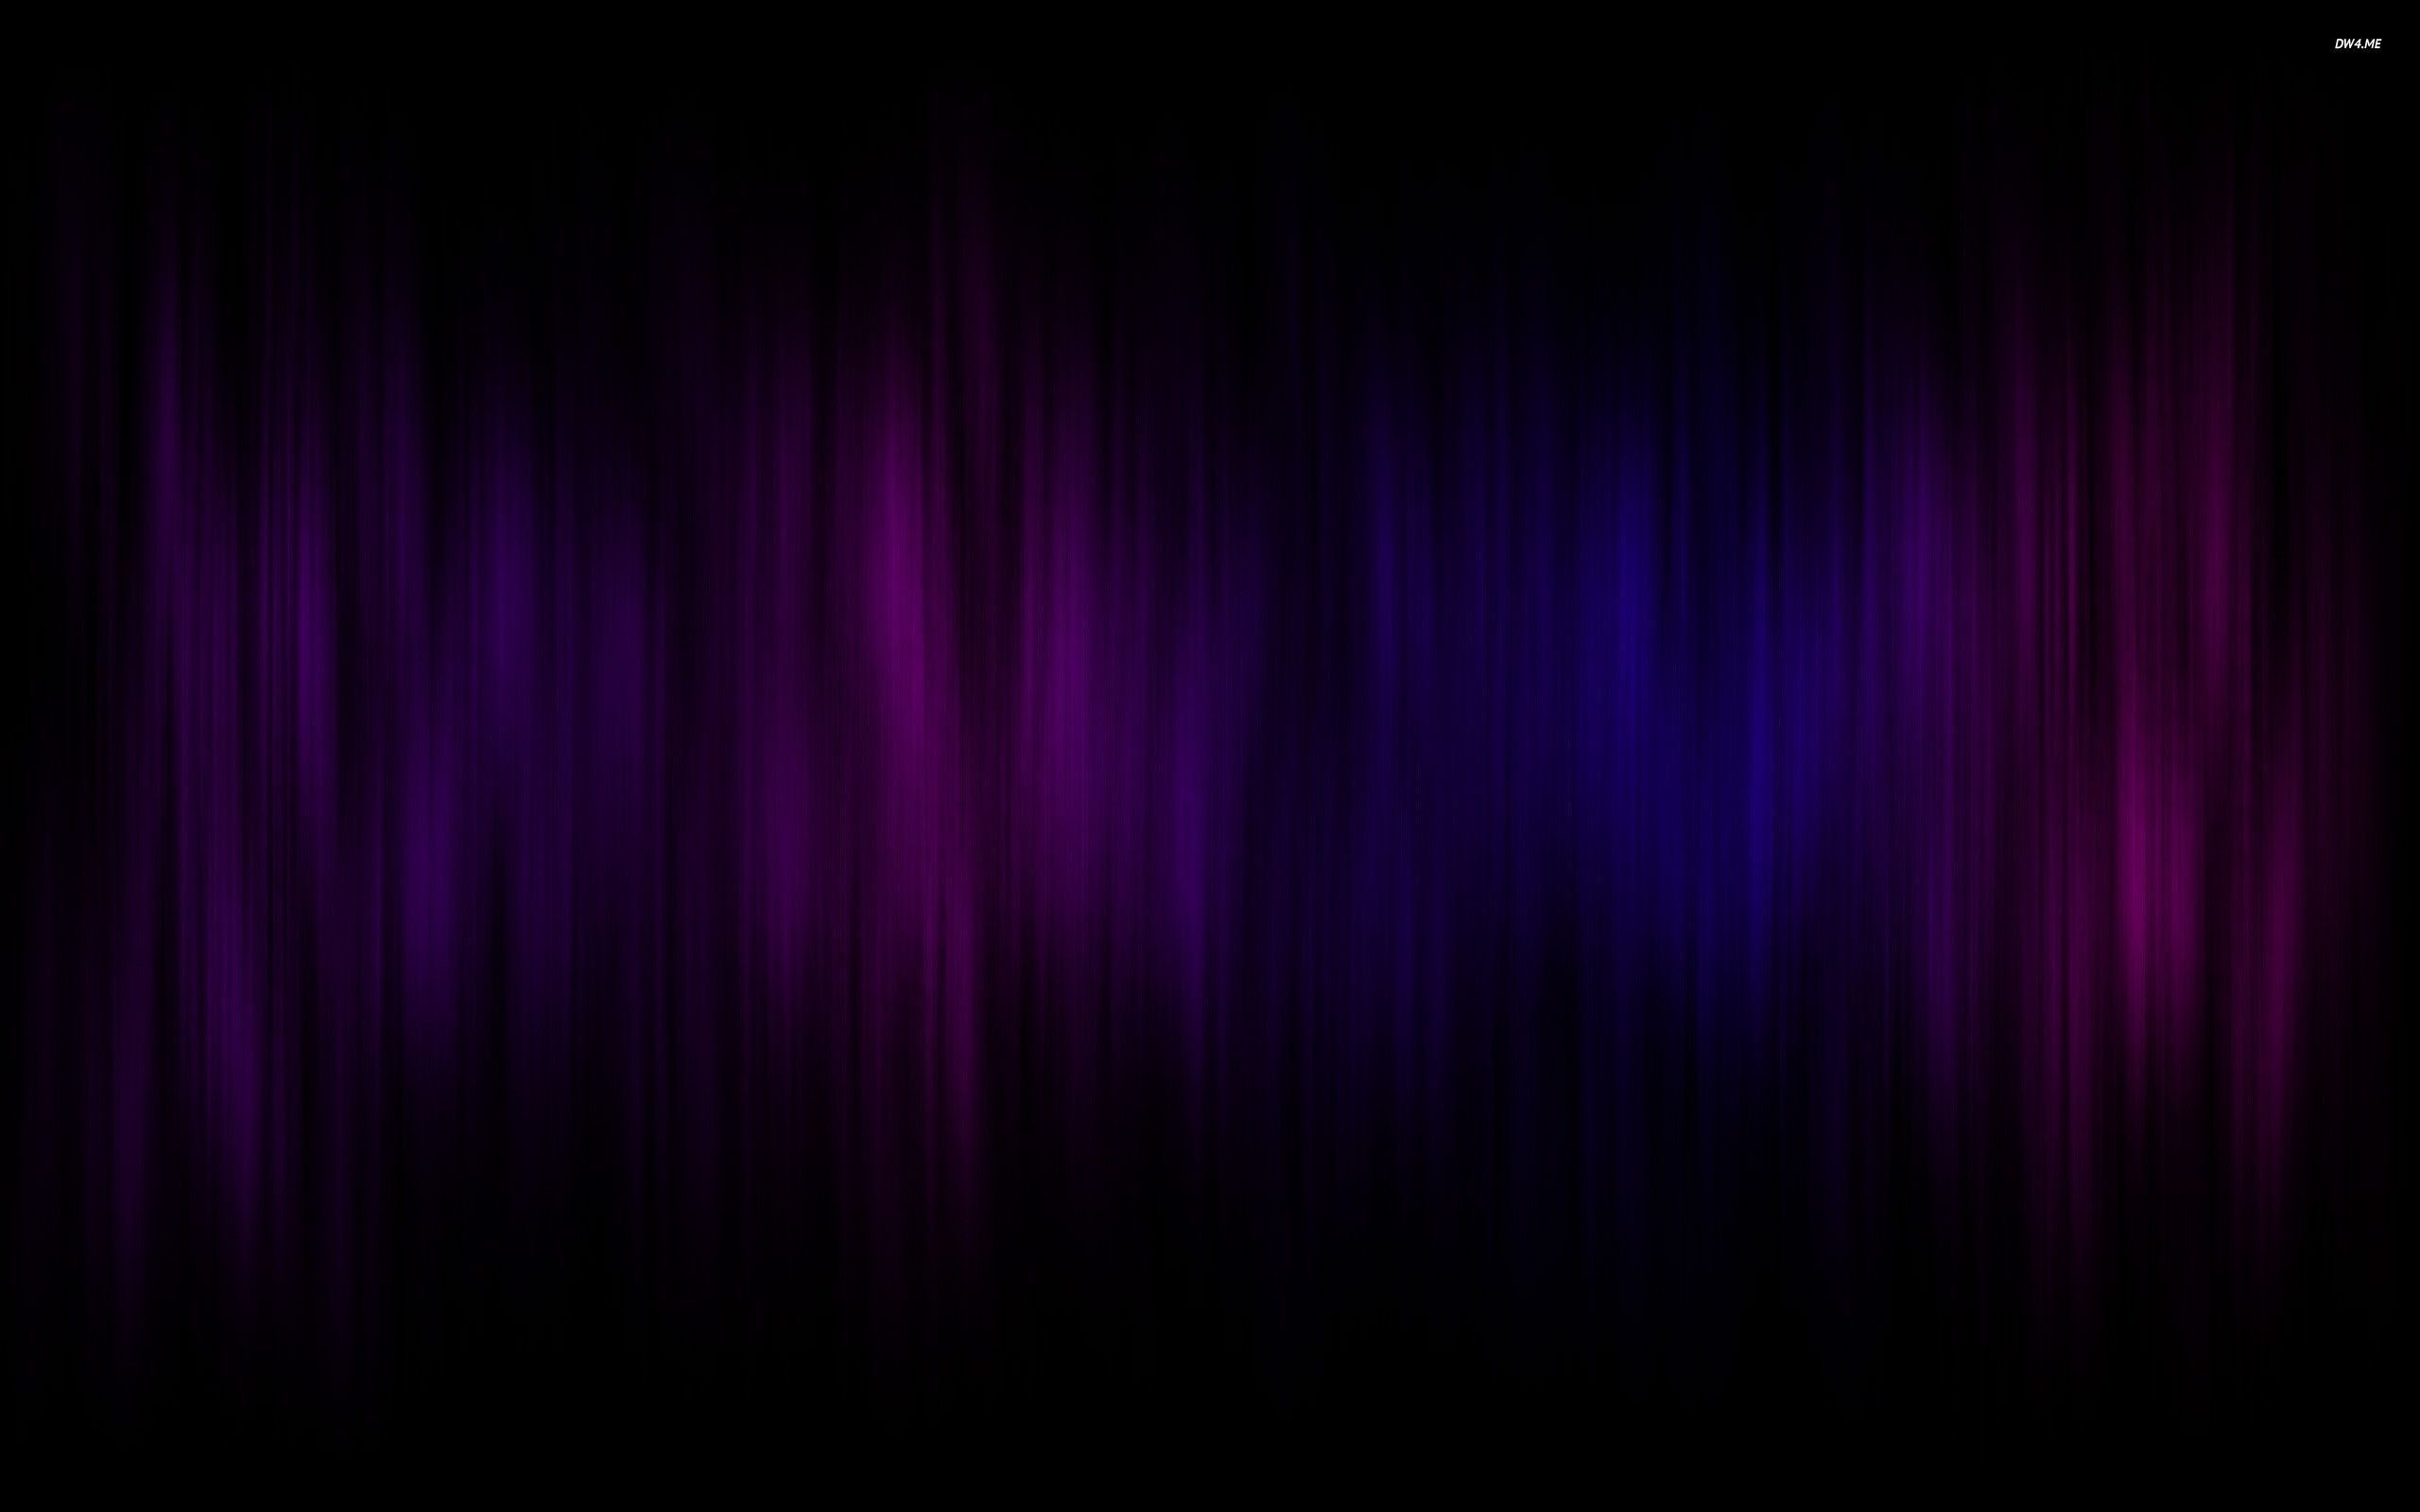 purple and black wallpaper (75+ images)